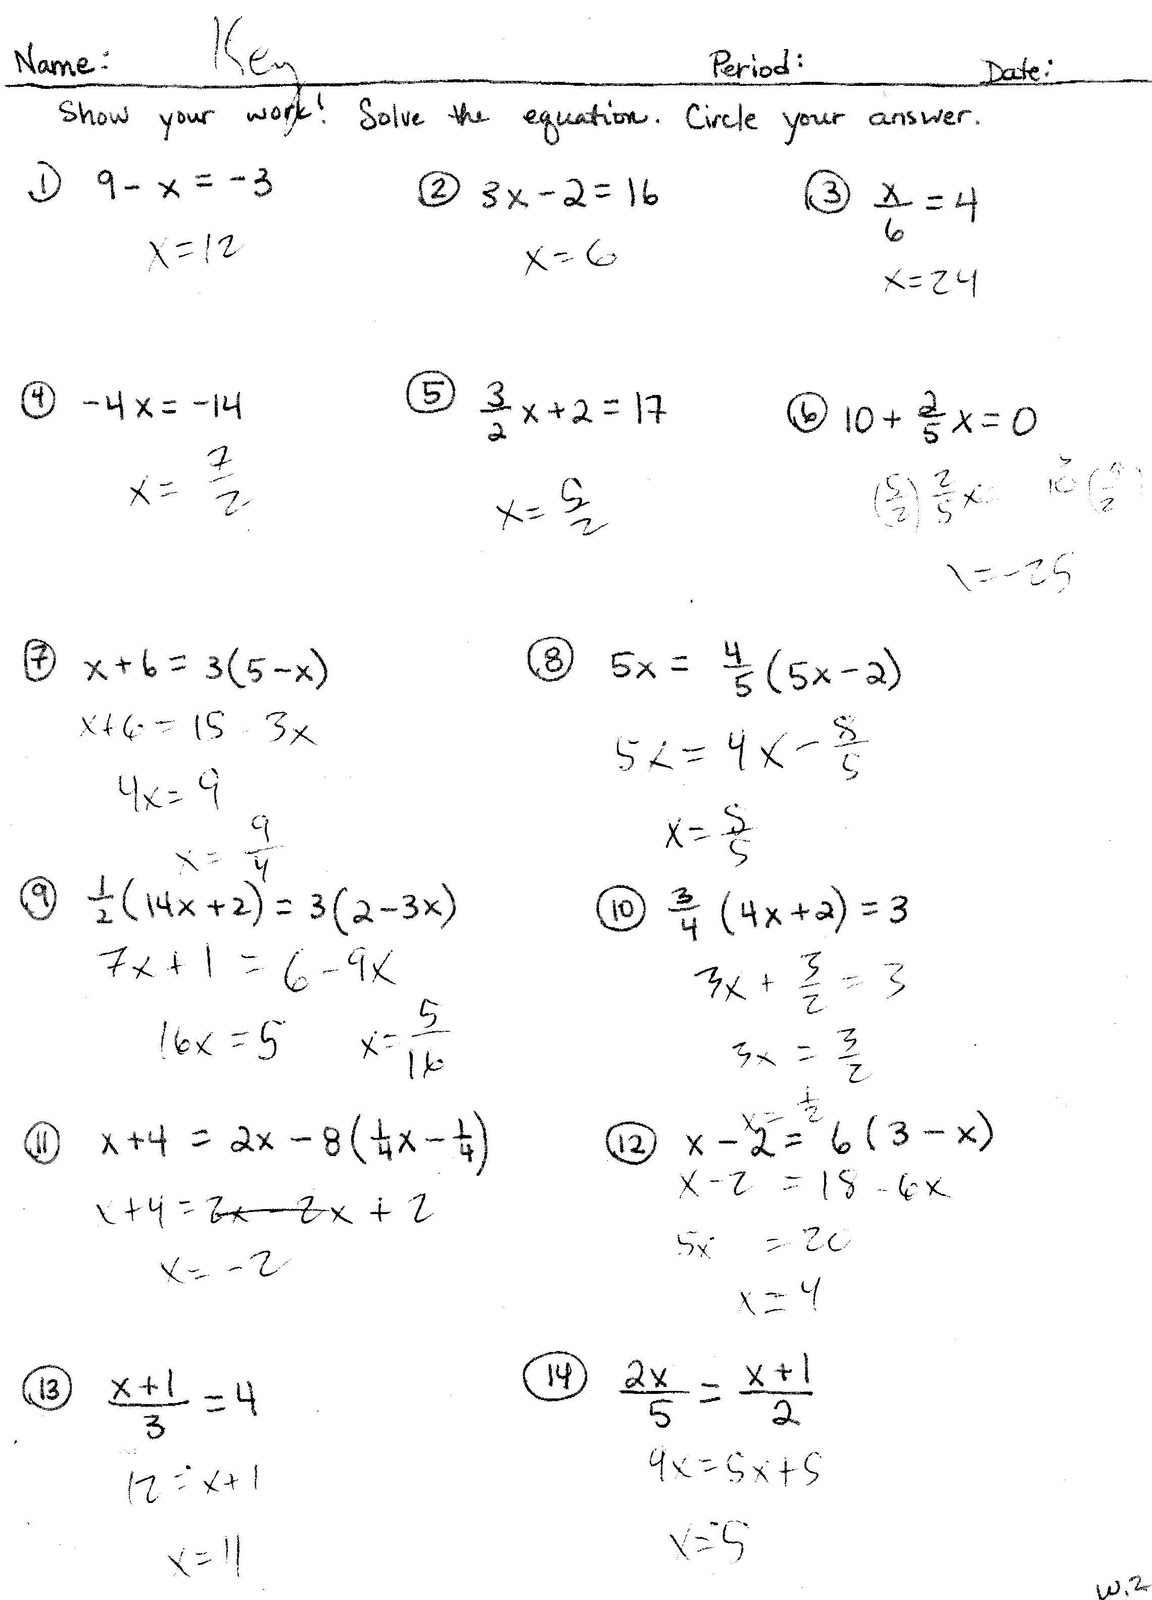 Worksheets Solving Literal Equations Worksheet literal equations worksheet answers fallcreekonline org solve for the indicated source mr suominen s math homepage linear equations